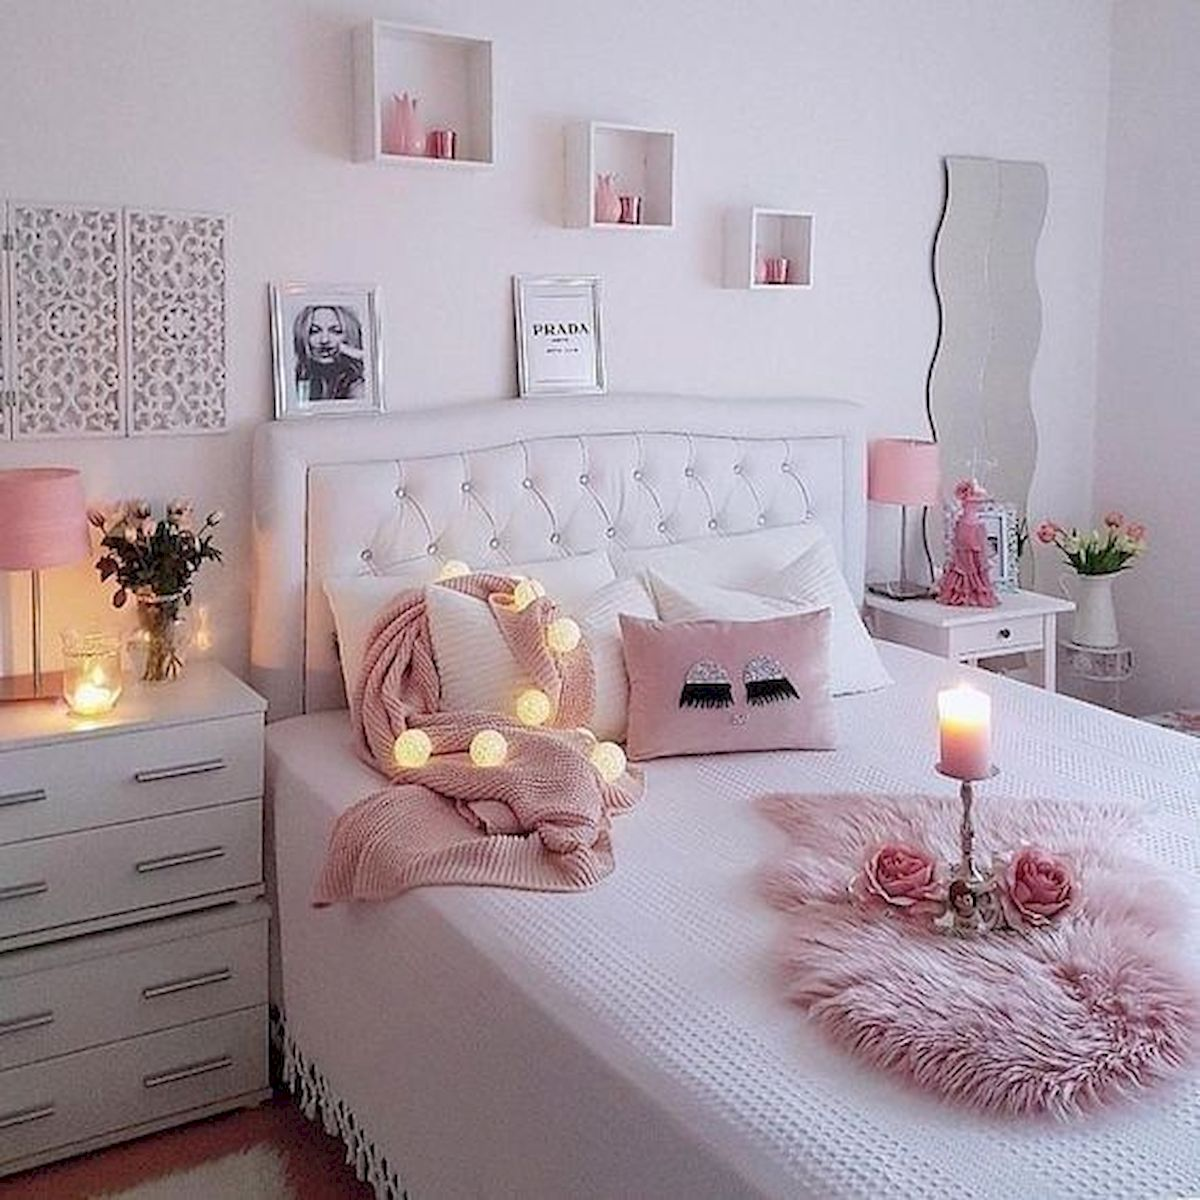 45 Beautiful Bedroom Decor Ideas for Teens (45)